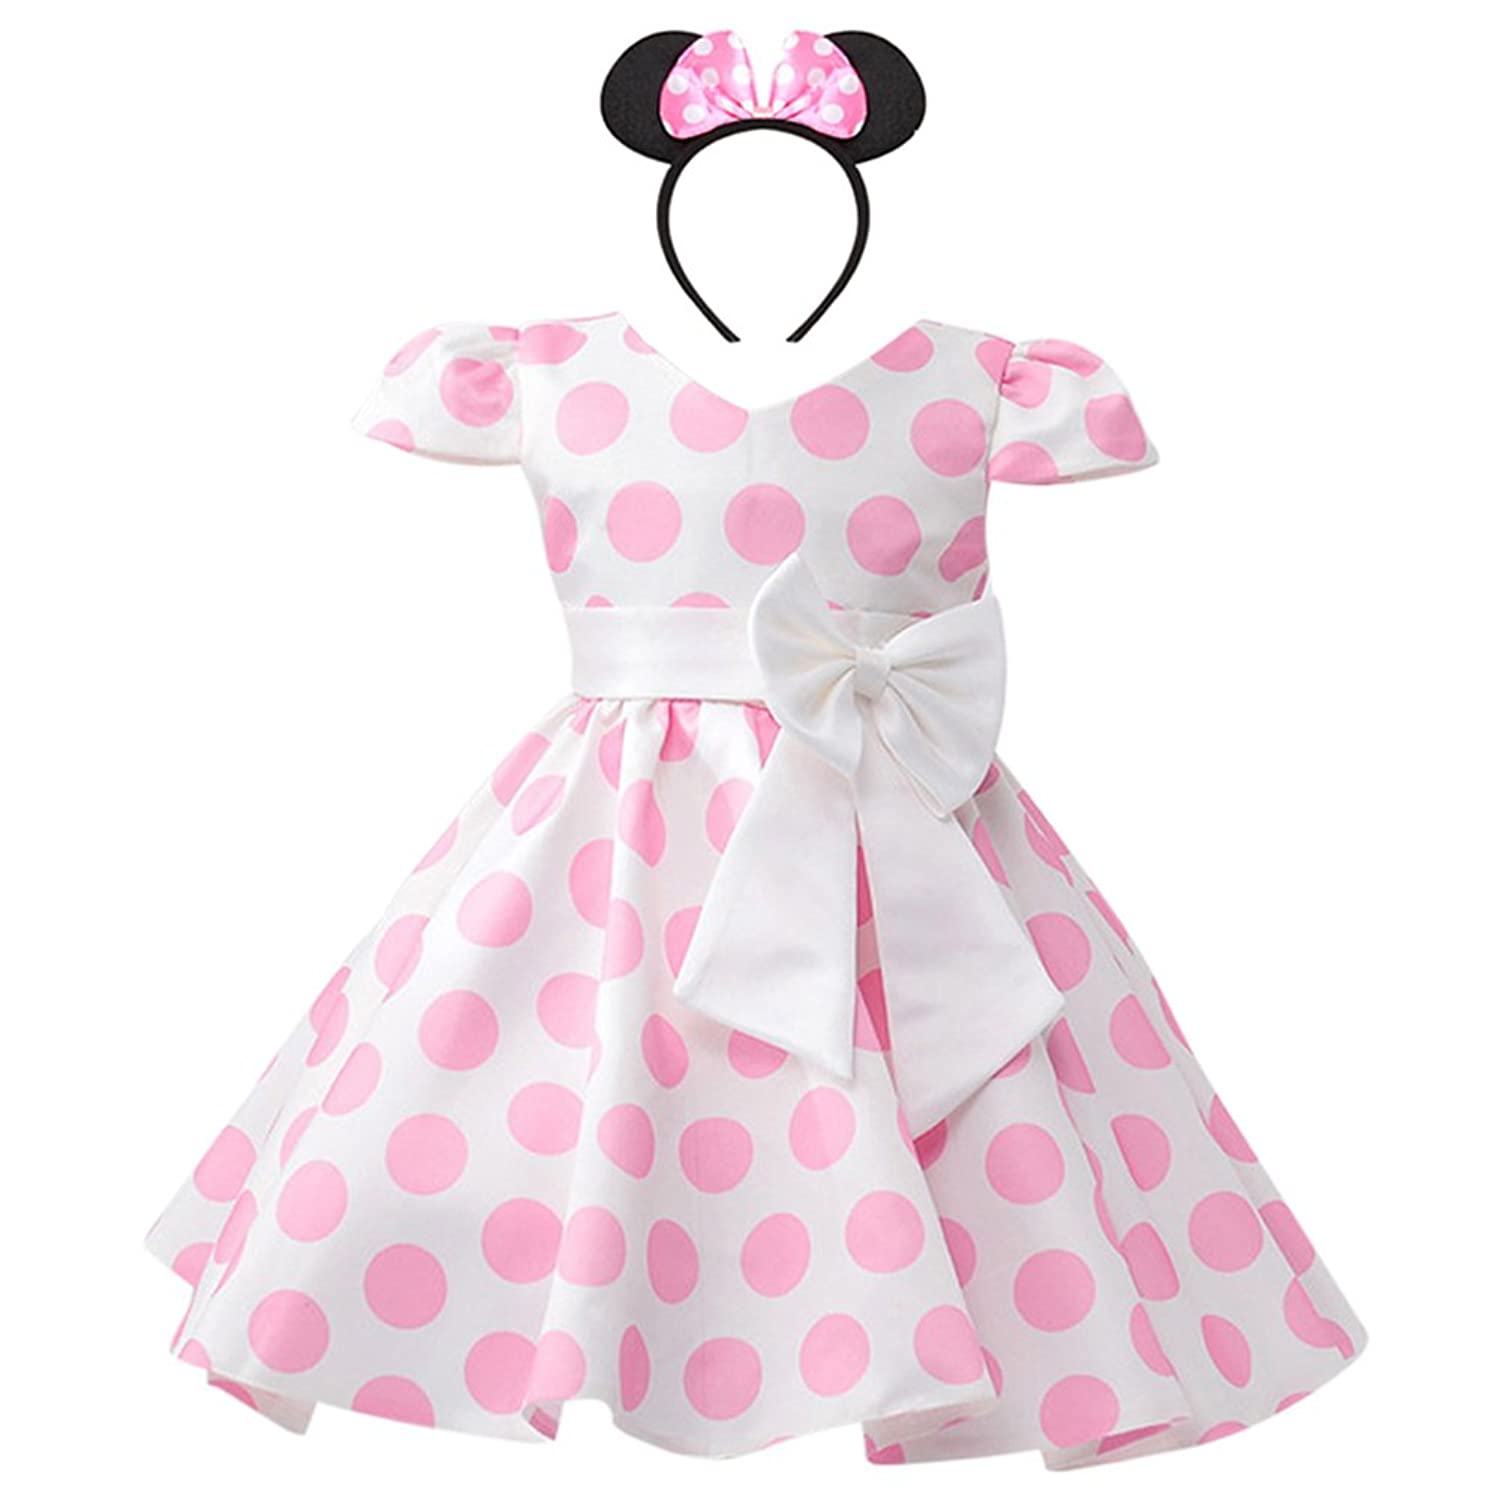 OBEEII Baby Girls Polka Dots Princess Dress Newborn Infant Cute Tutu